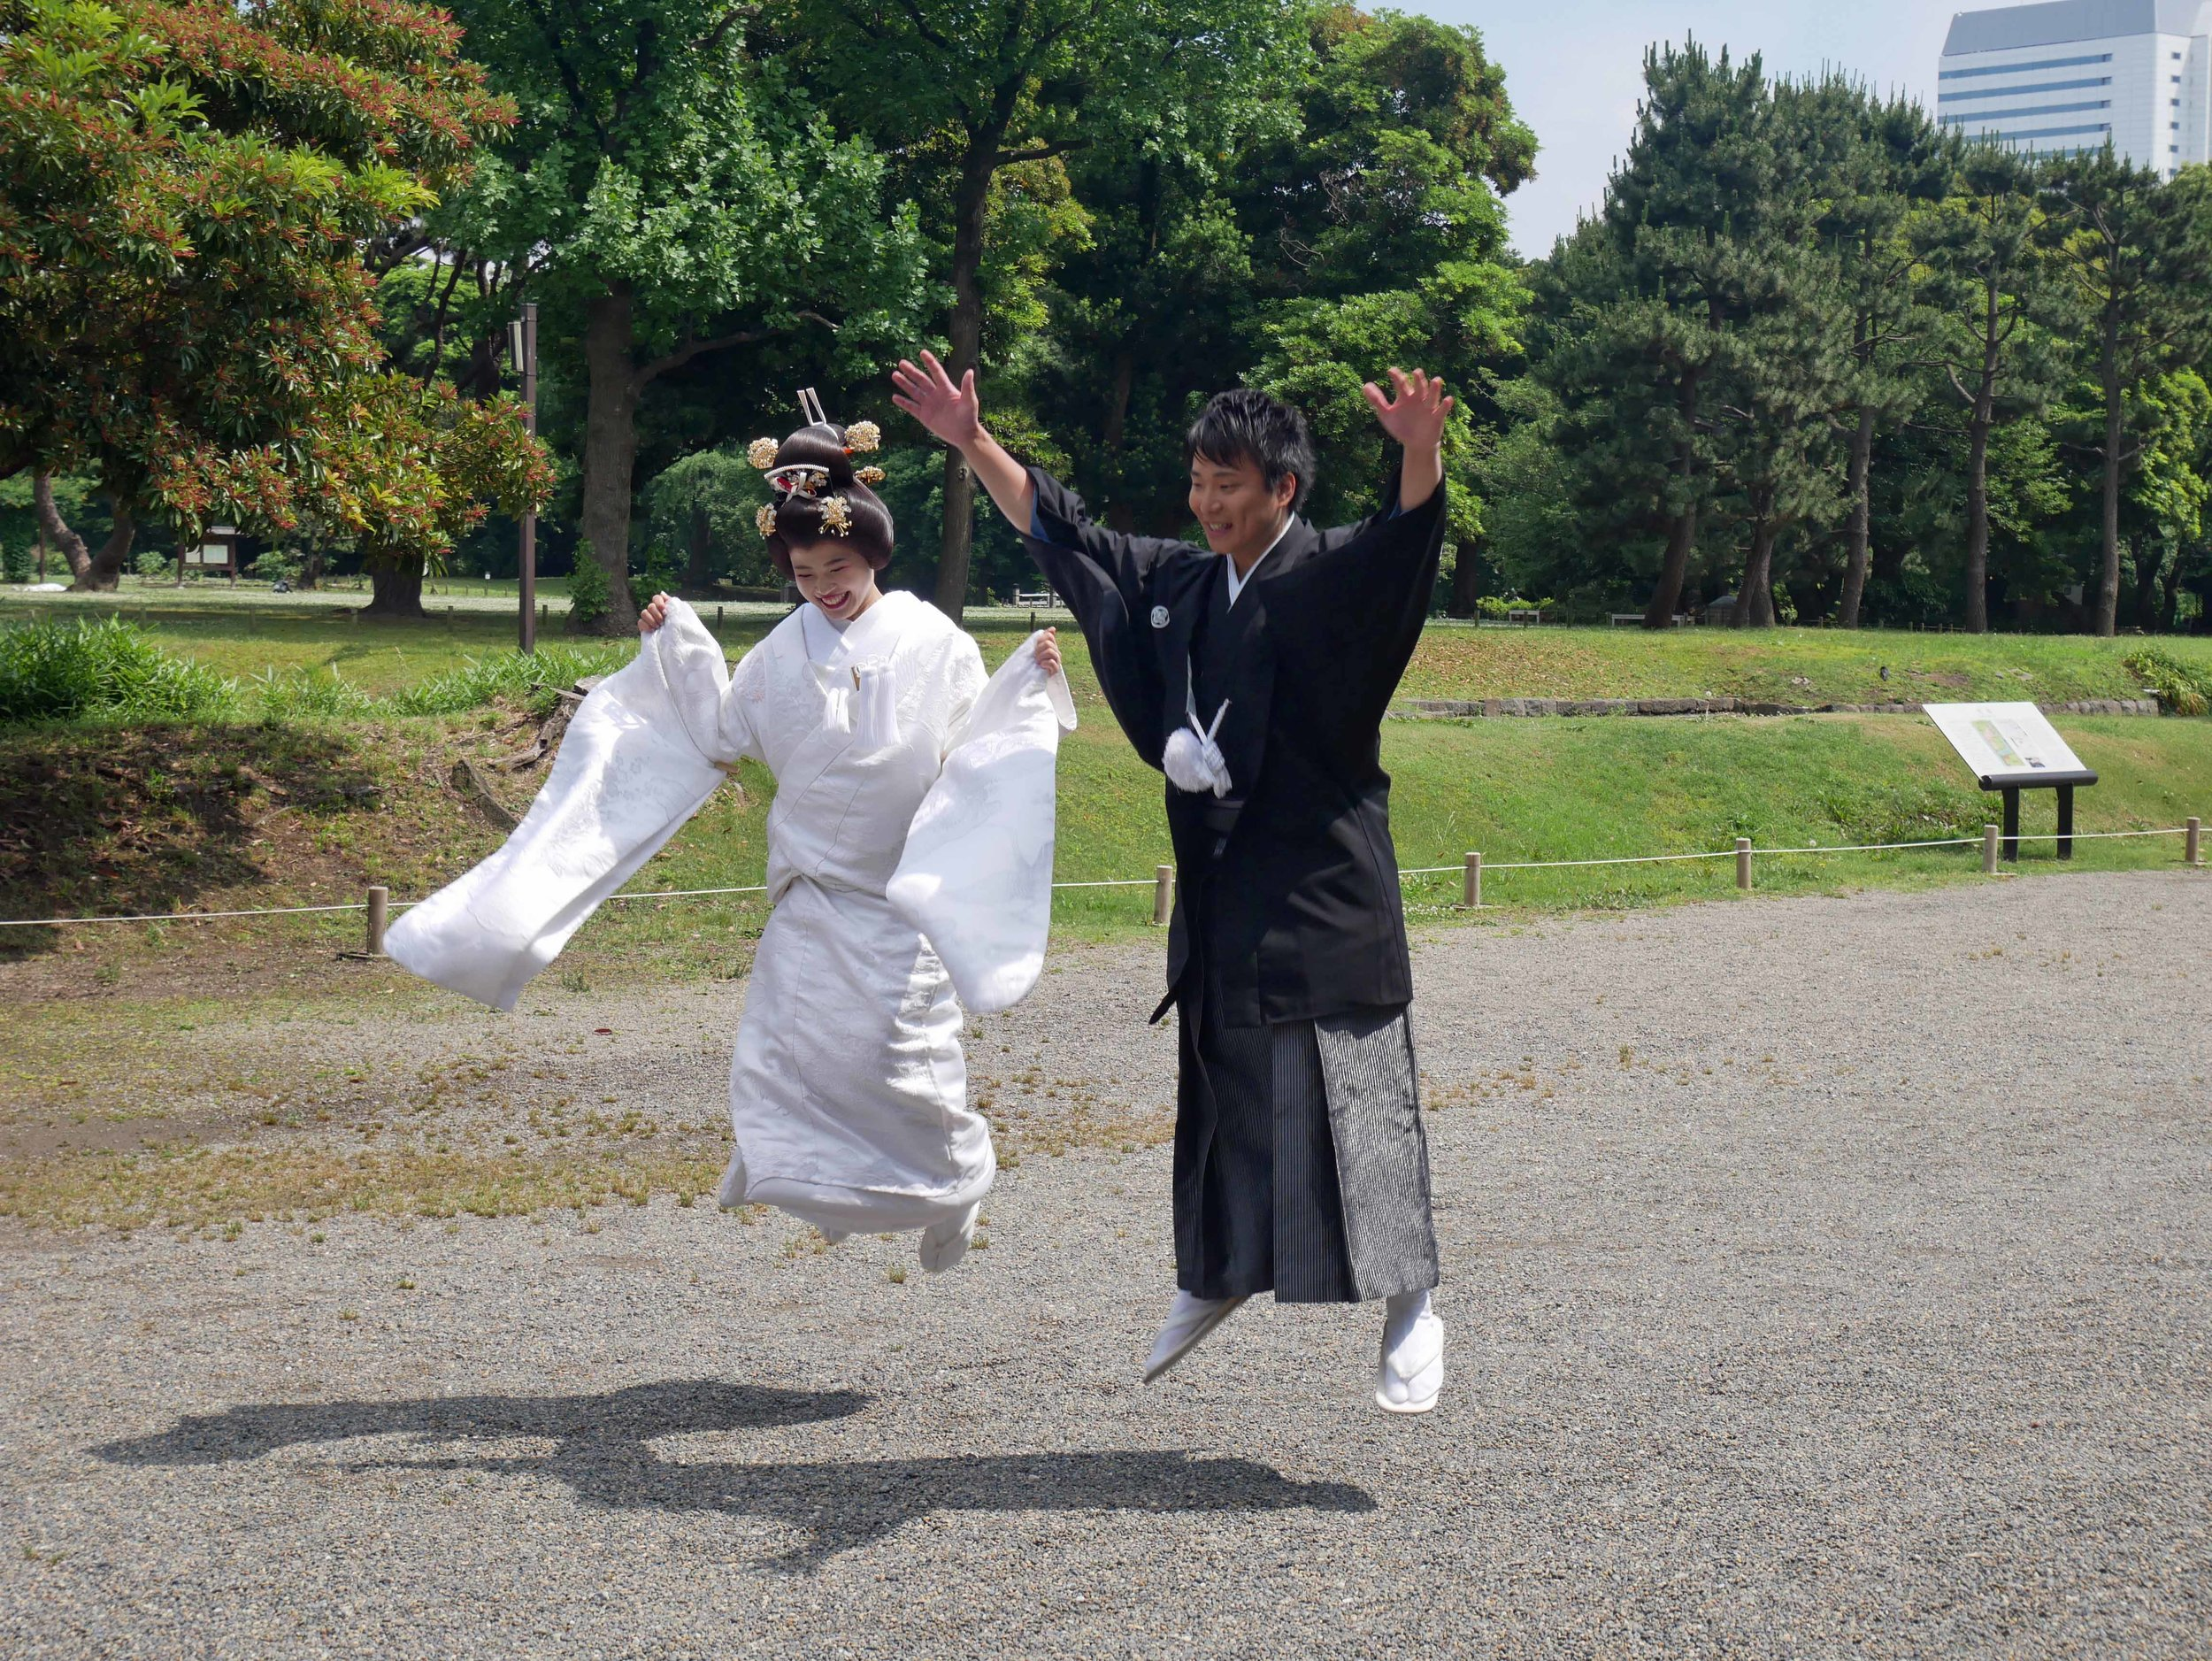 Just married! A couple in traditional national costume jump for joy in Hama-rikyu garden.